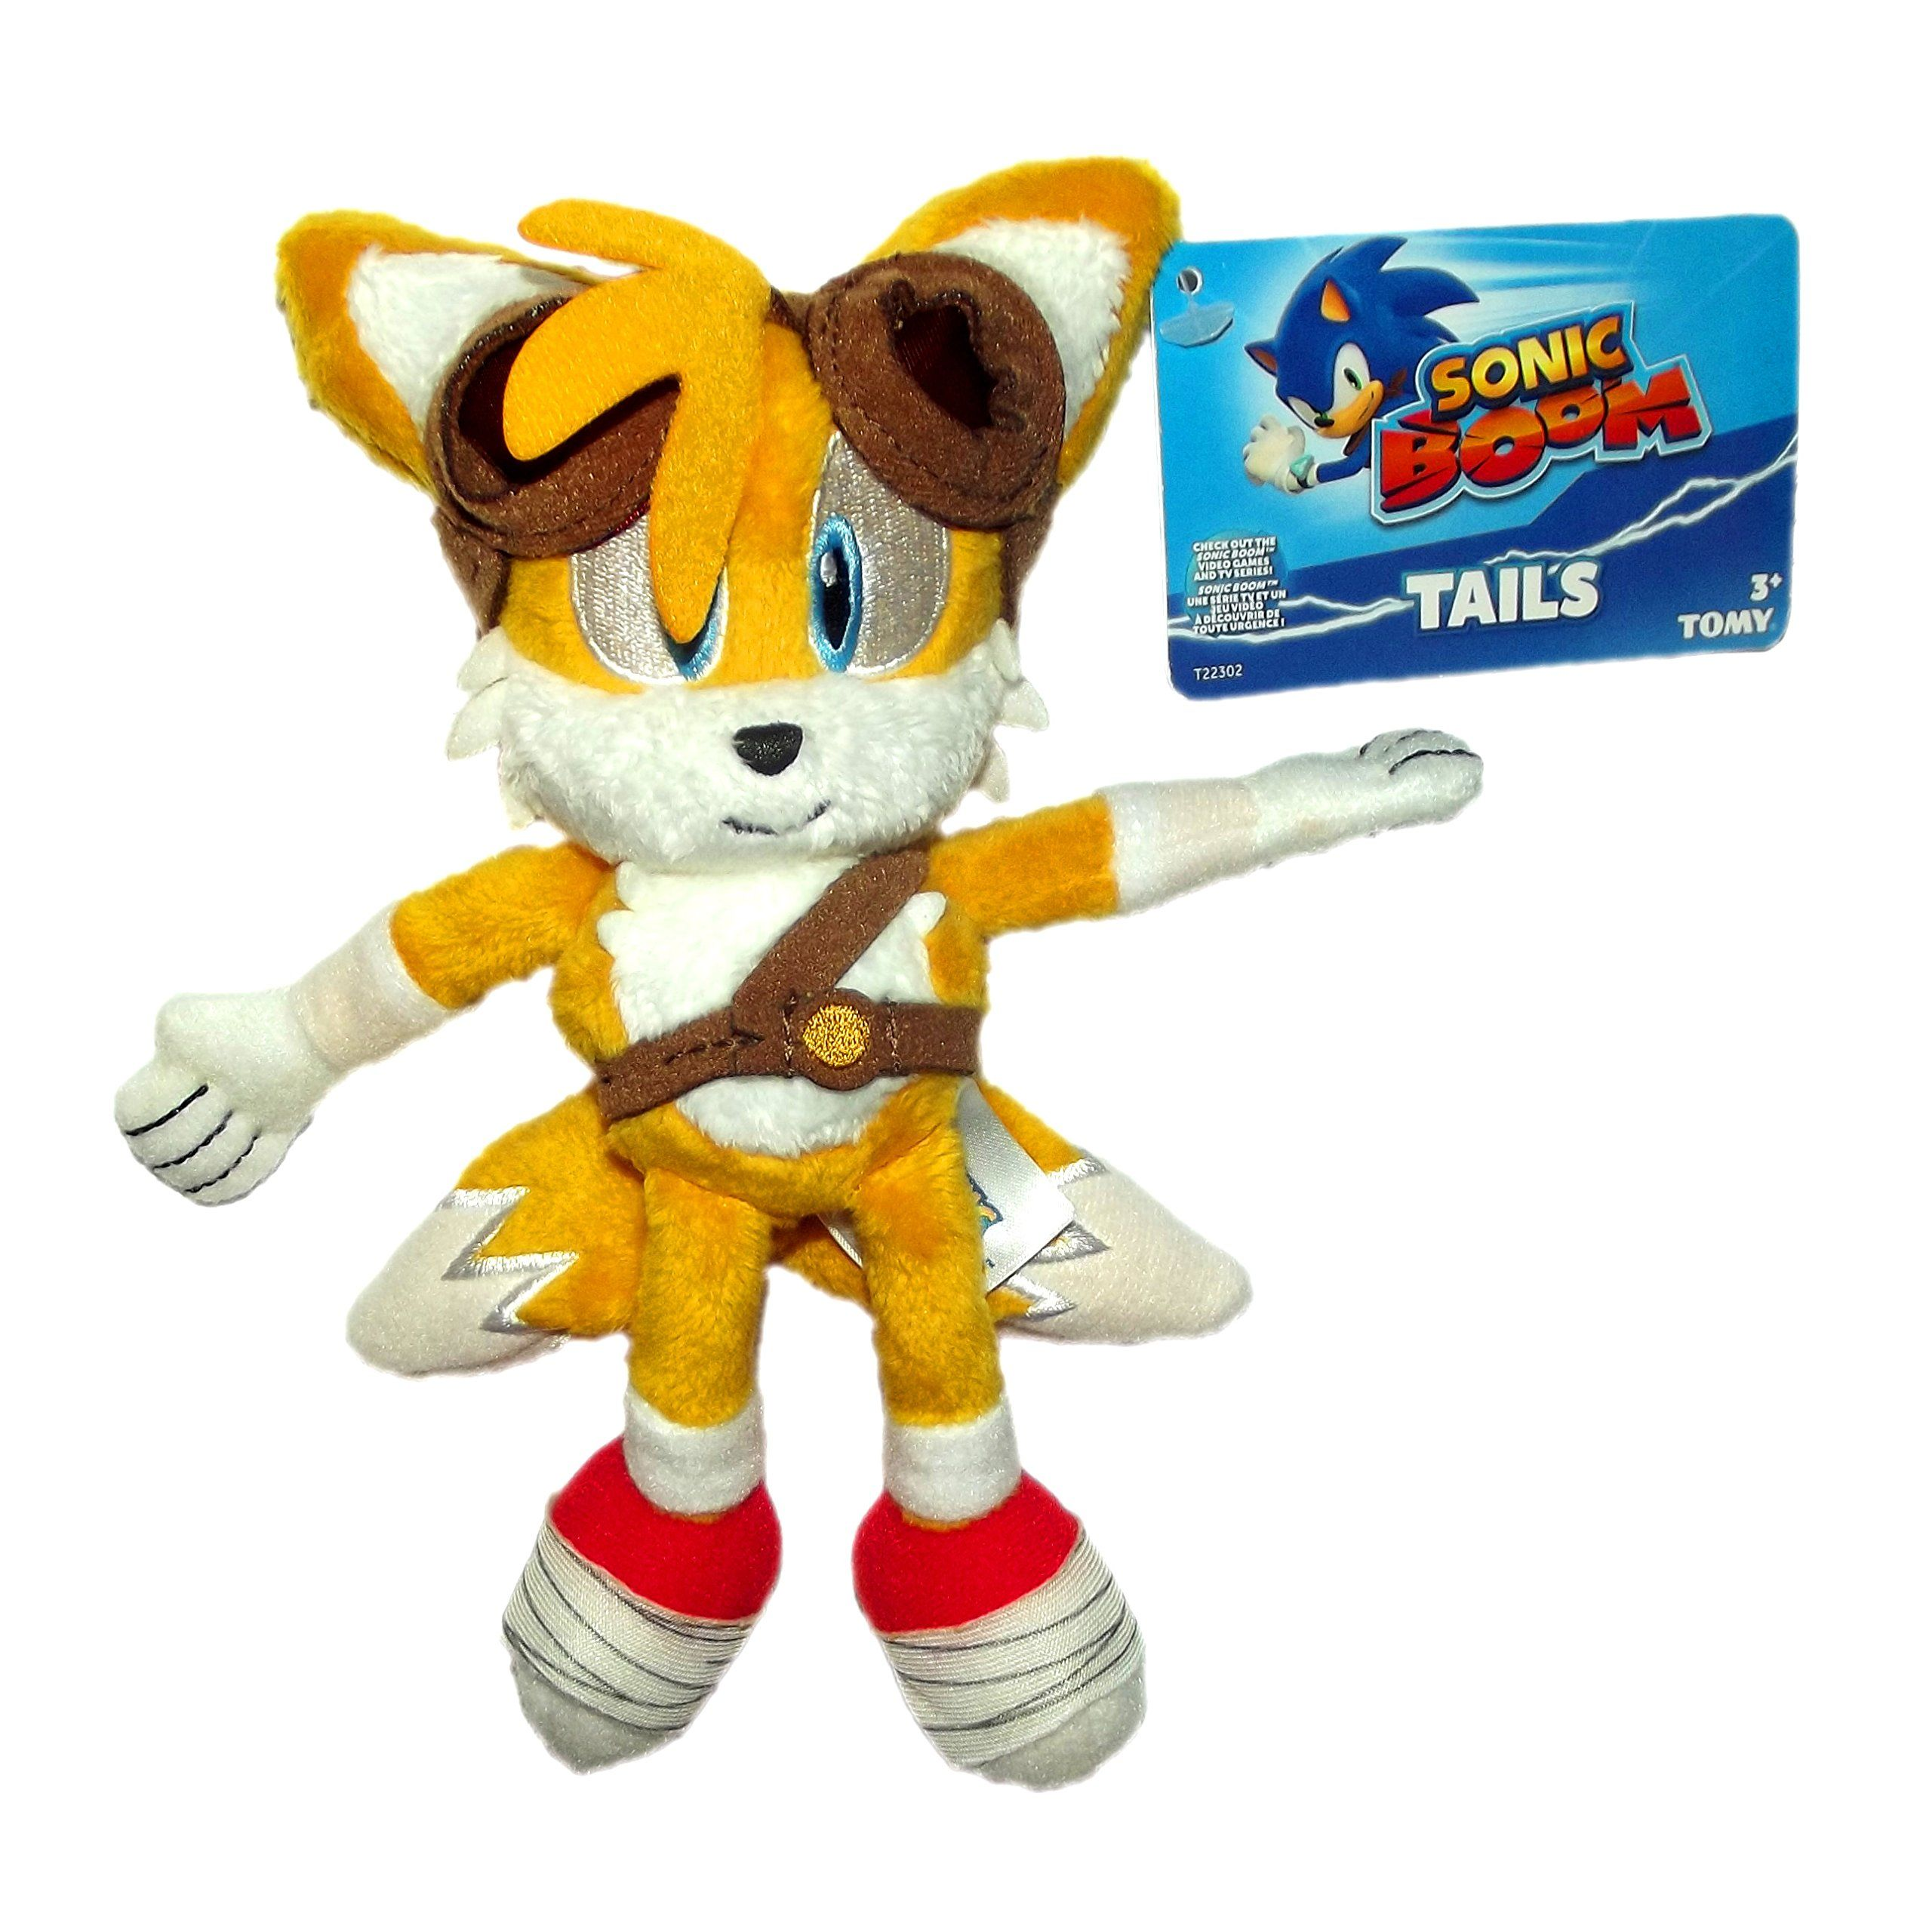 TOMY Sonic the Hedgehog Sonic Boom Tails 8 inch Plush with Goggles ...